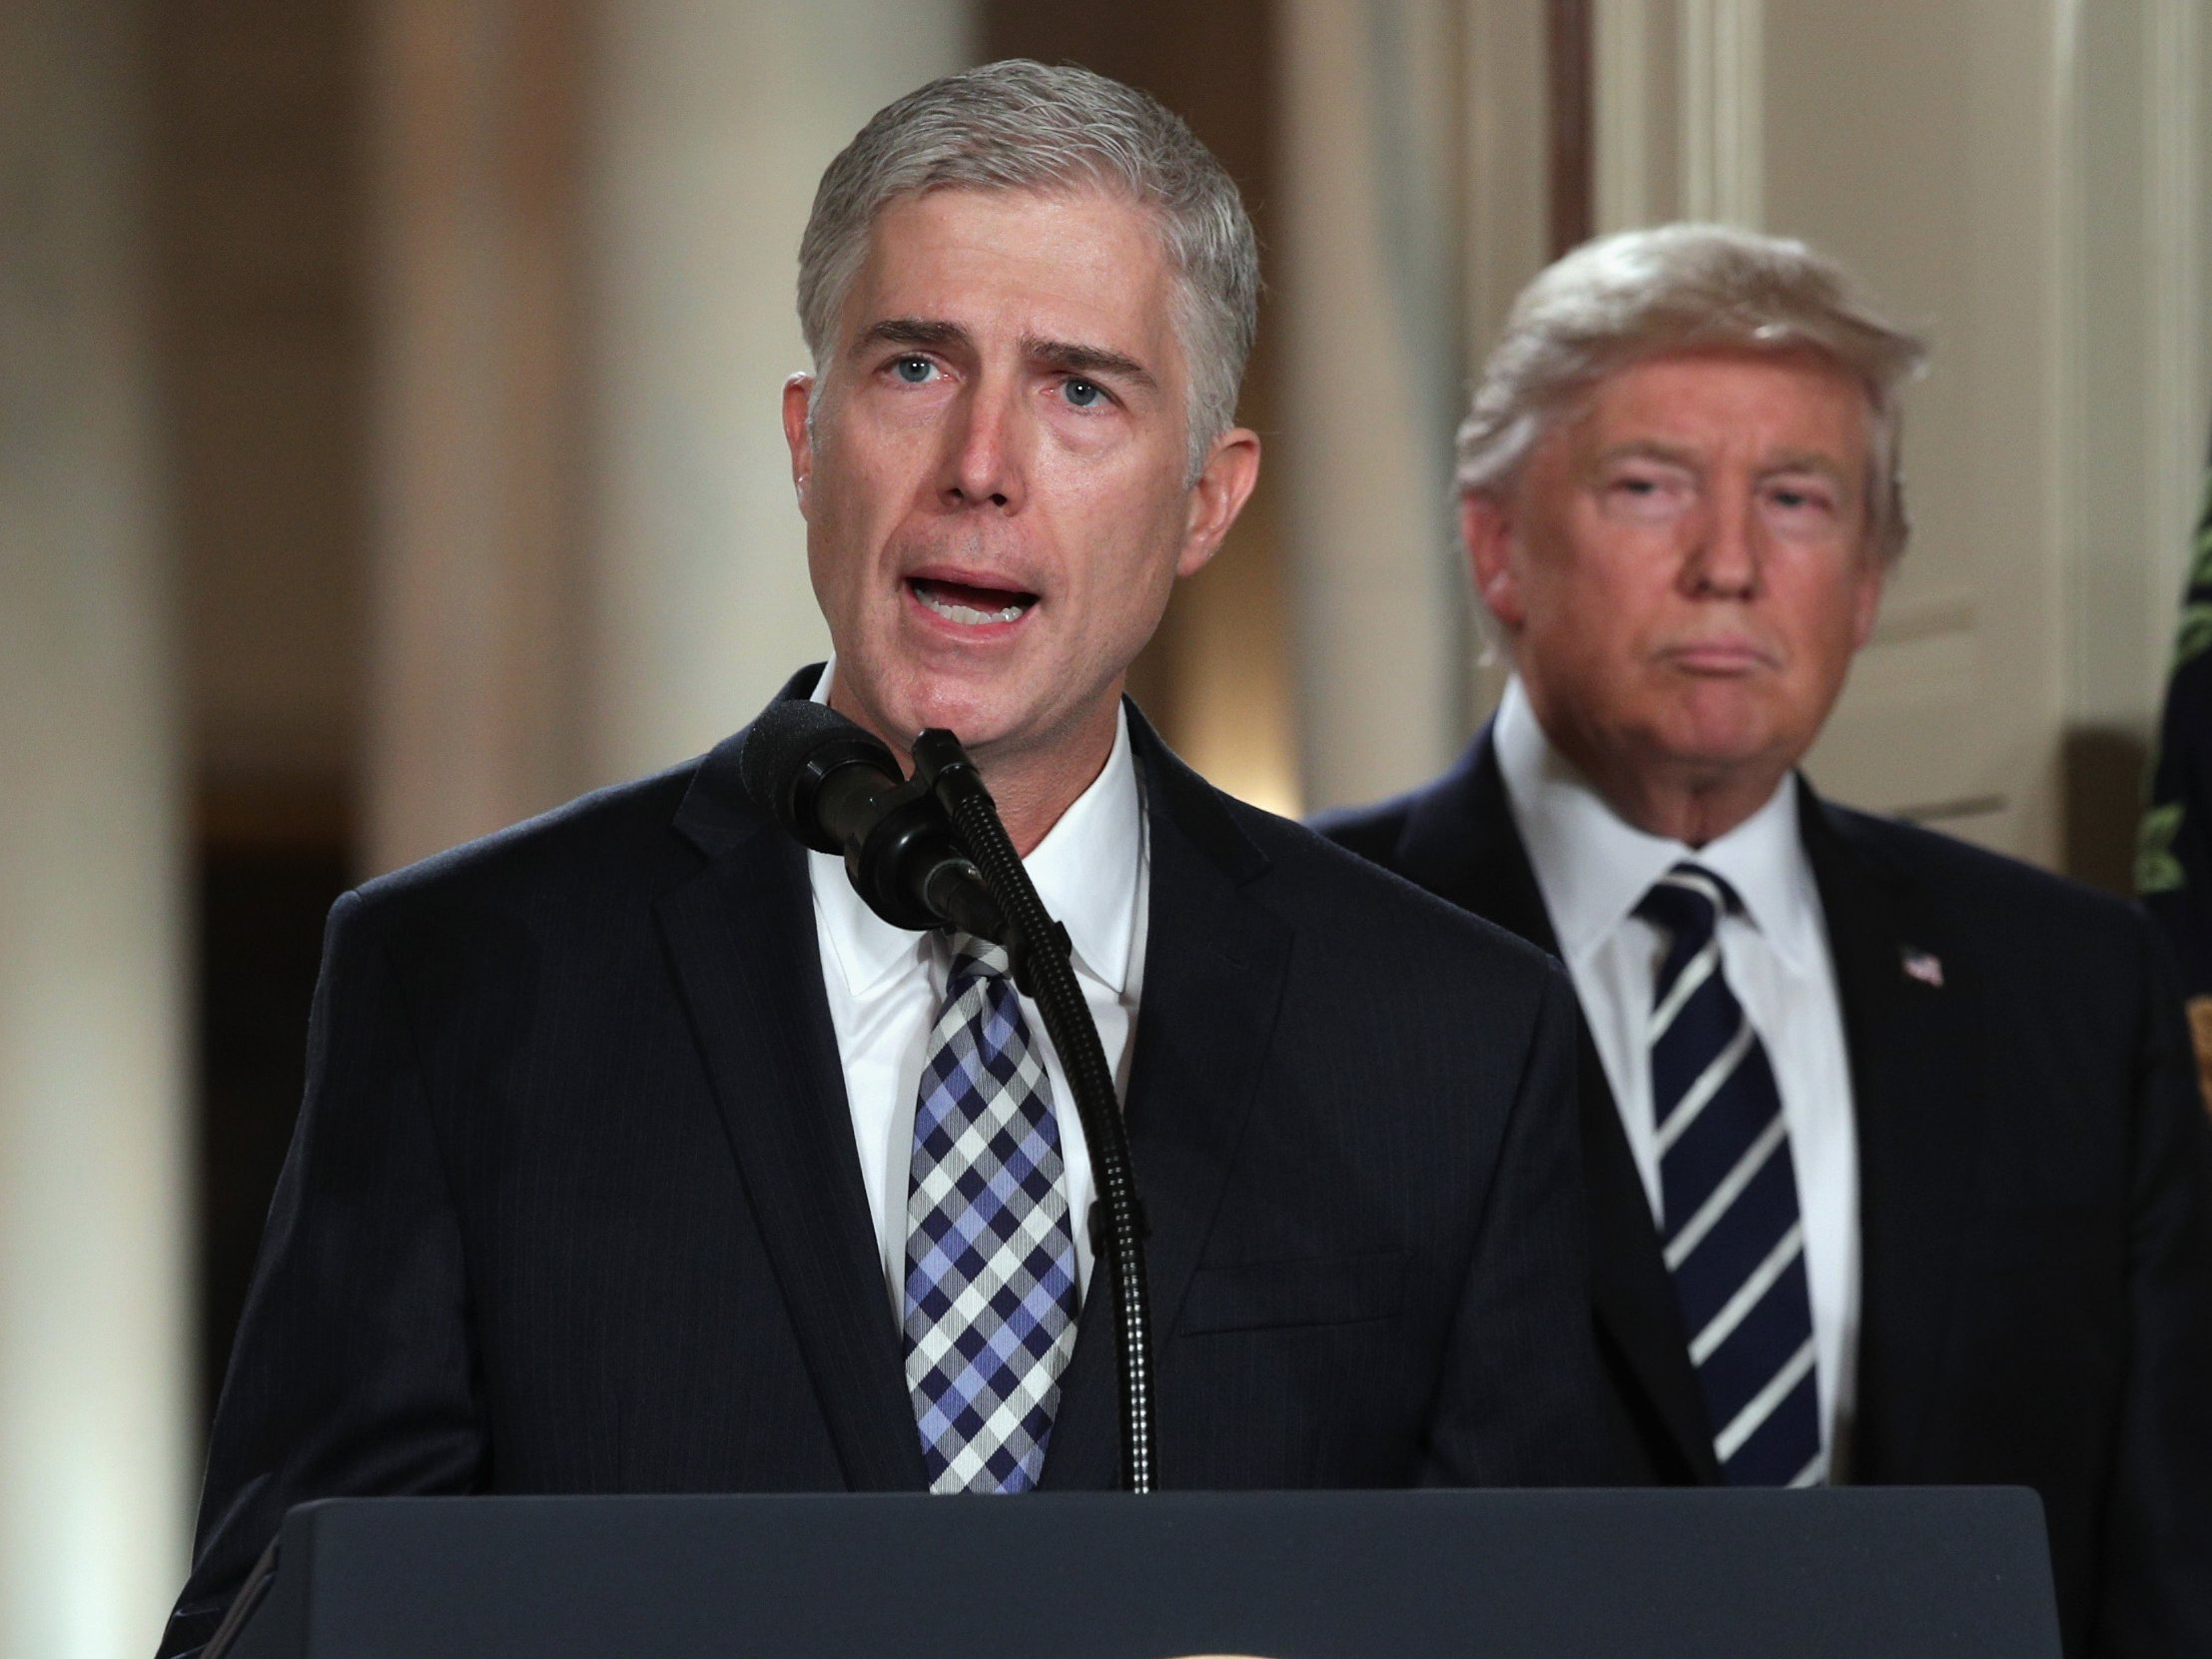 """POLL CLOSED: Should GOP Exercise The """"Nuclear Option"""" If Dems Block Neil Gorsuch? Yes/No? VIEW RESULTS"""